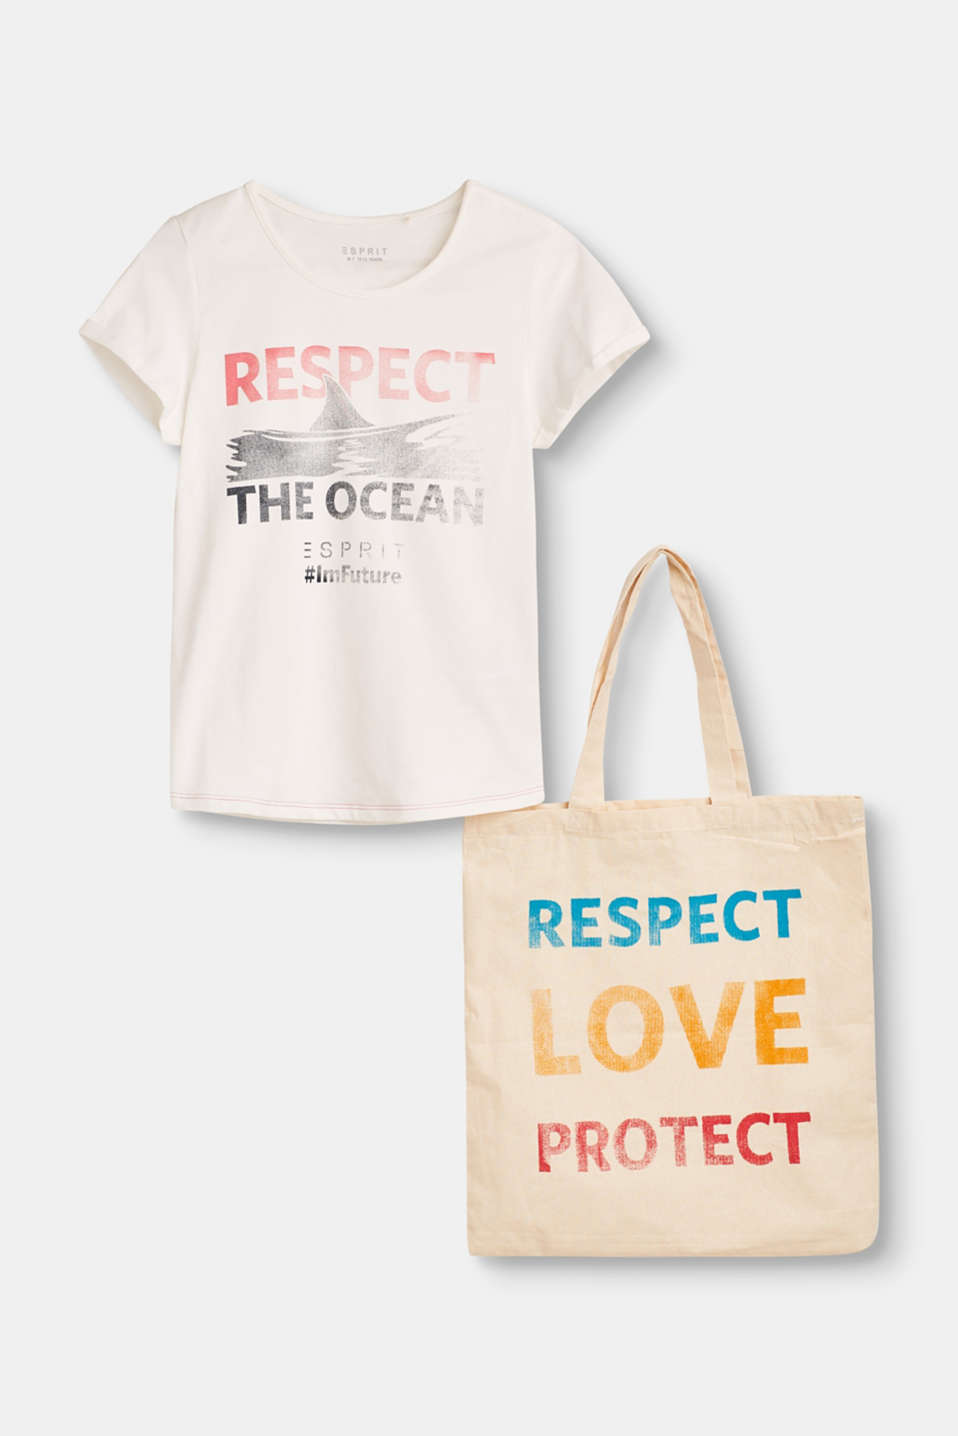 Respect, love, protect: this T-shirt and bag are true standard-bearers for sustainability and marine protection.